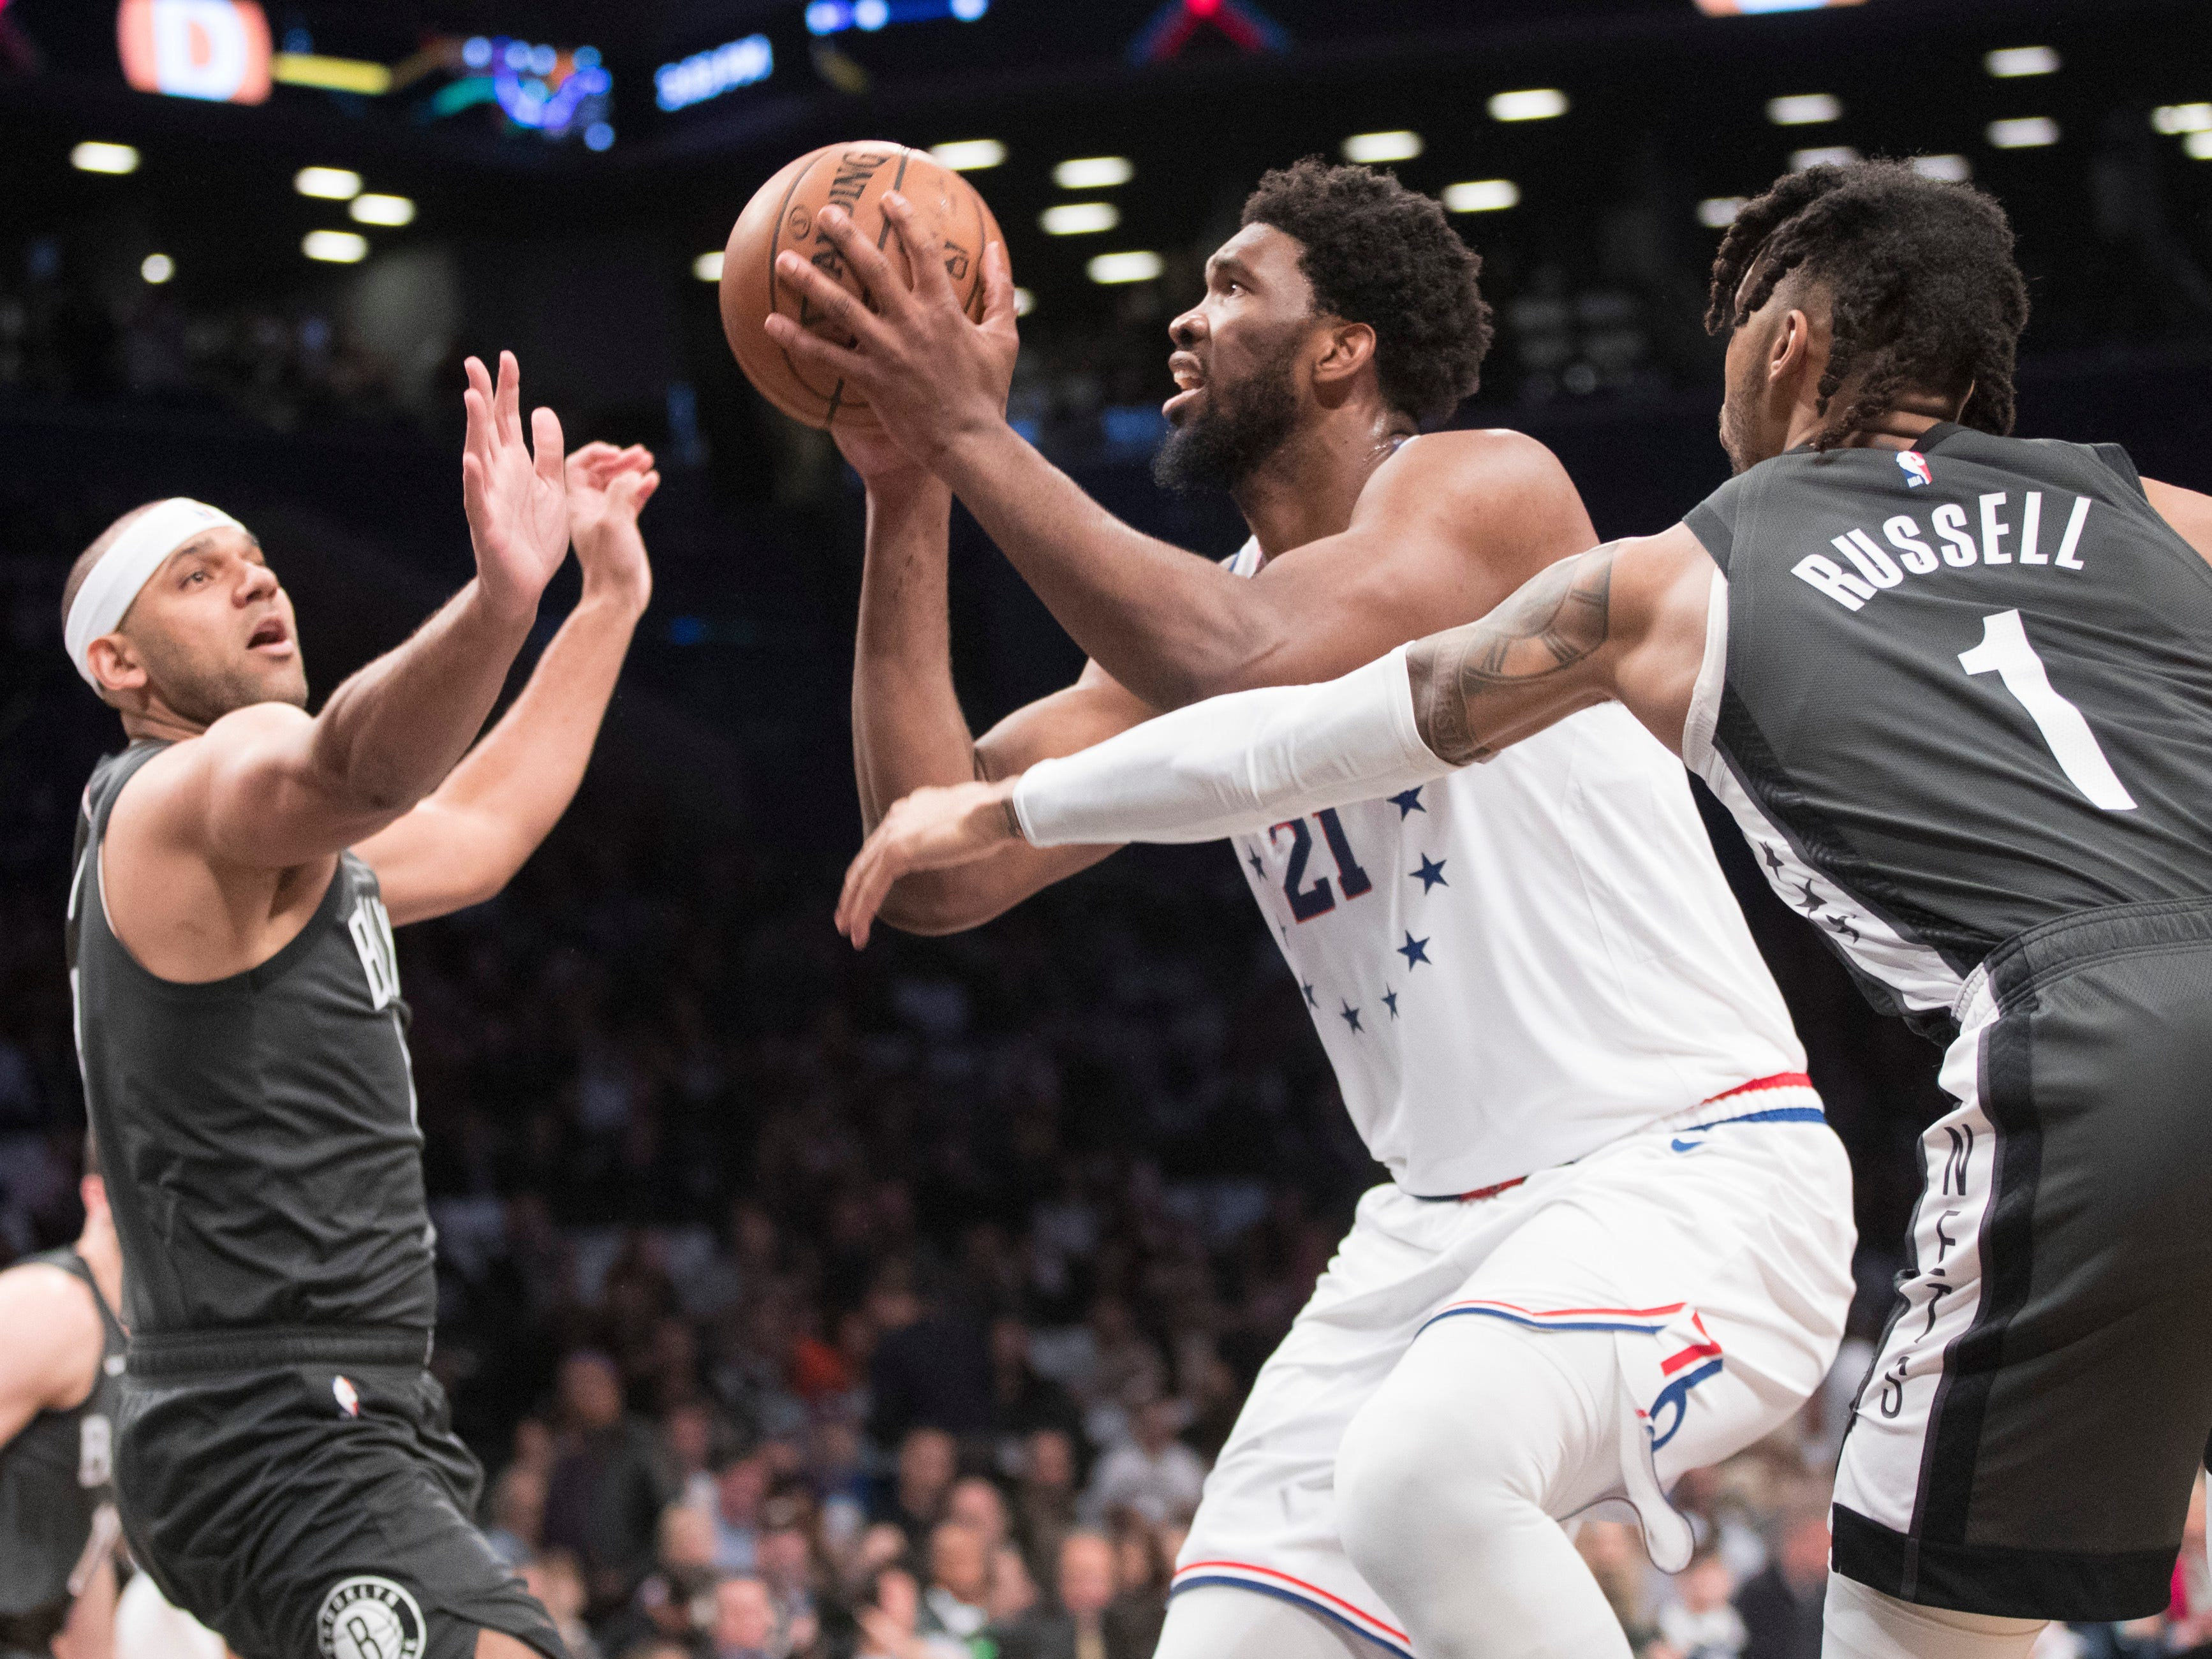 Joel Embiid does it all as Sixers pull out a gutsy win against Brooklyn Nets to take a 3-1 series lead